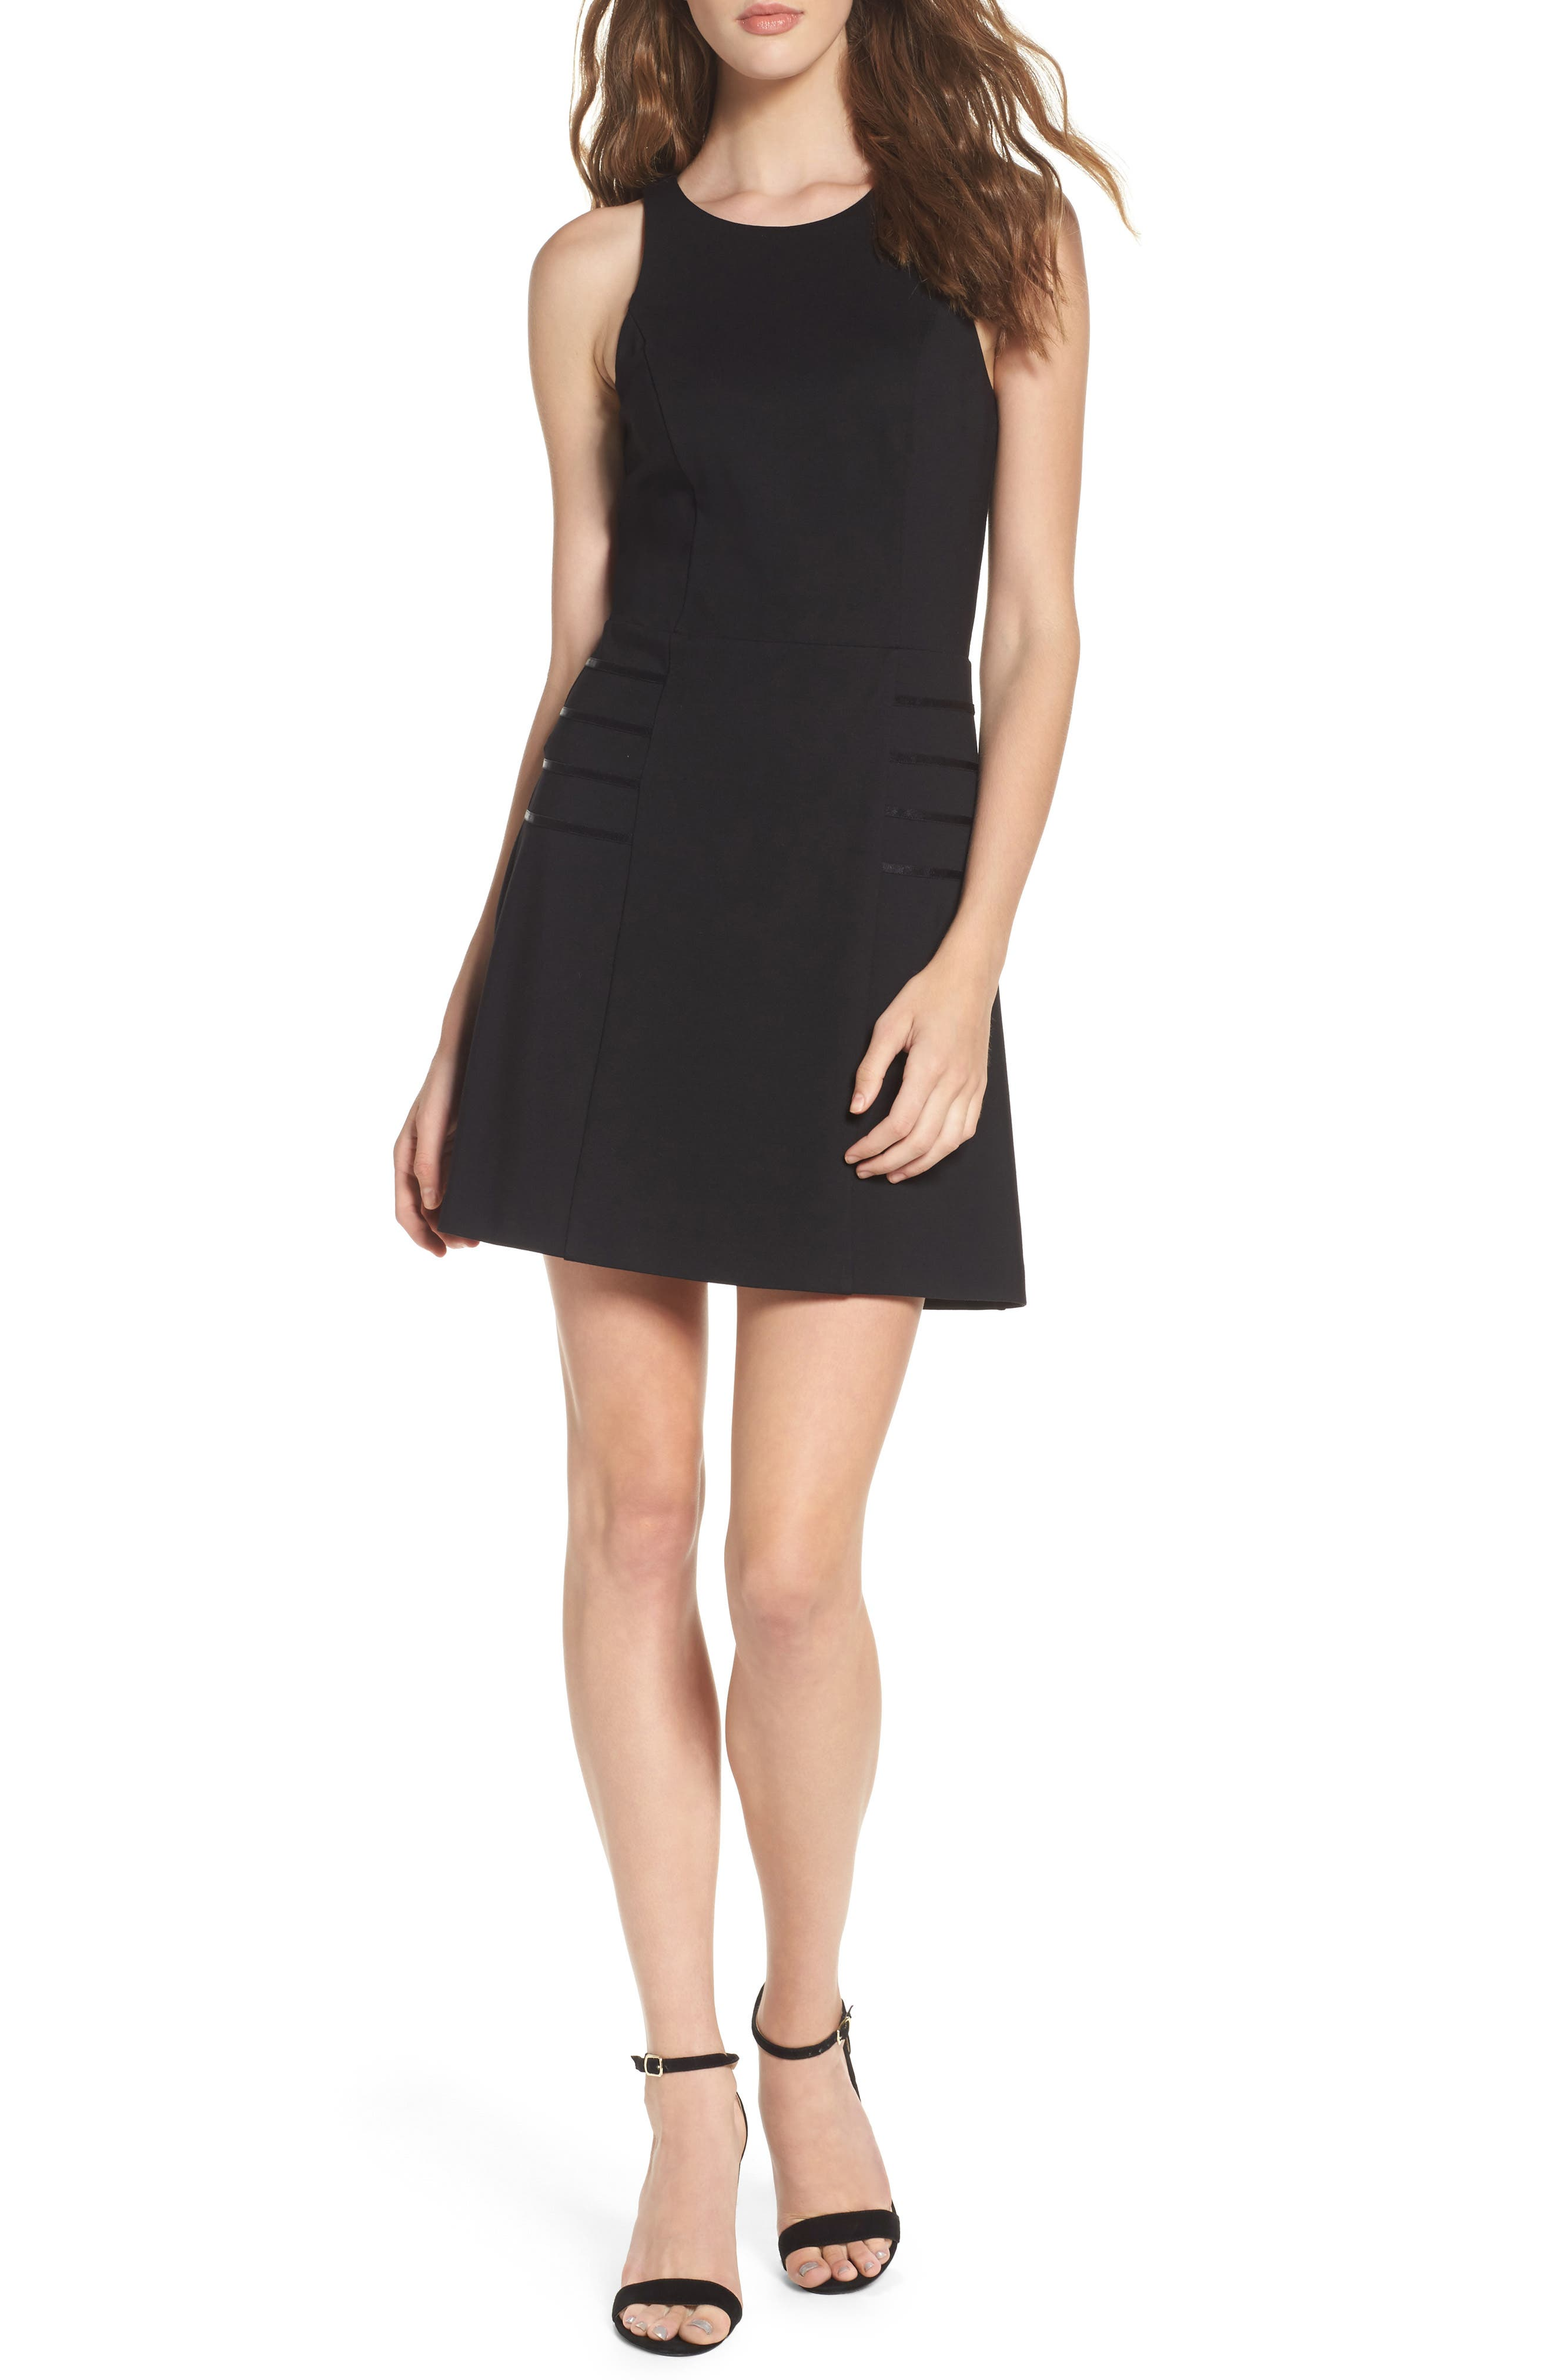 Imma Do Me Minidress,                         Main,                         color, 001